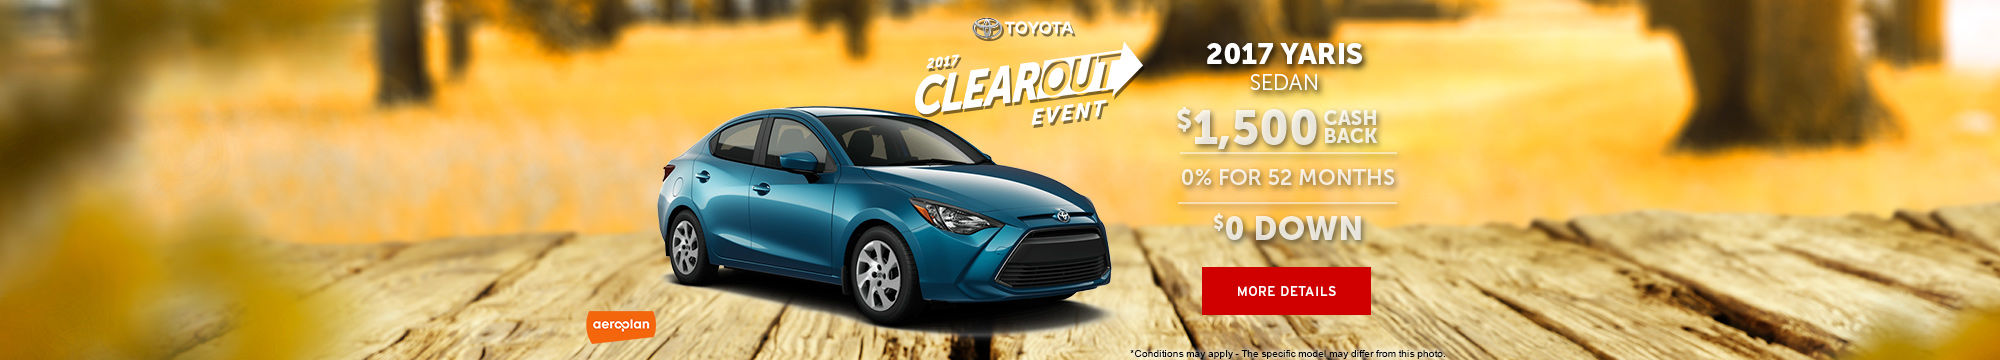 2017 Clearout Event - Yaris